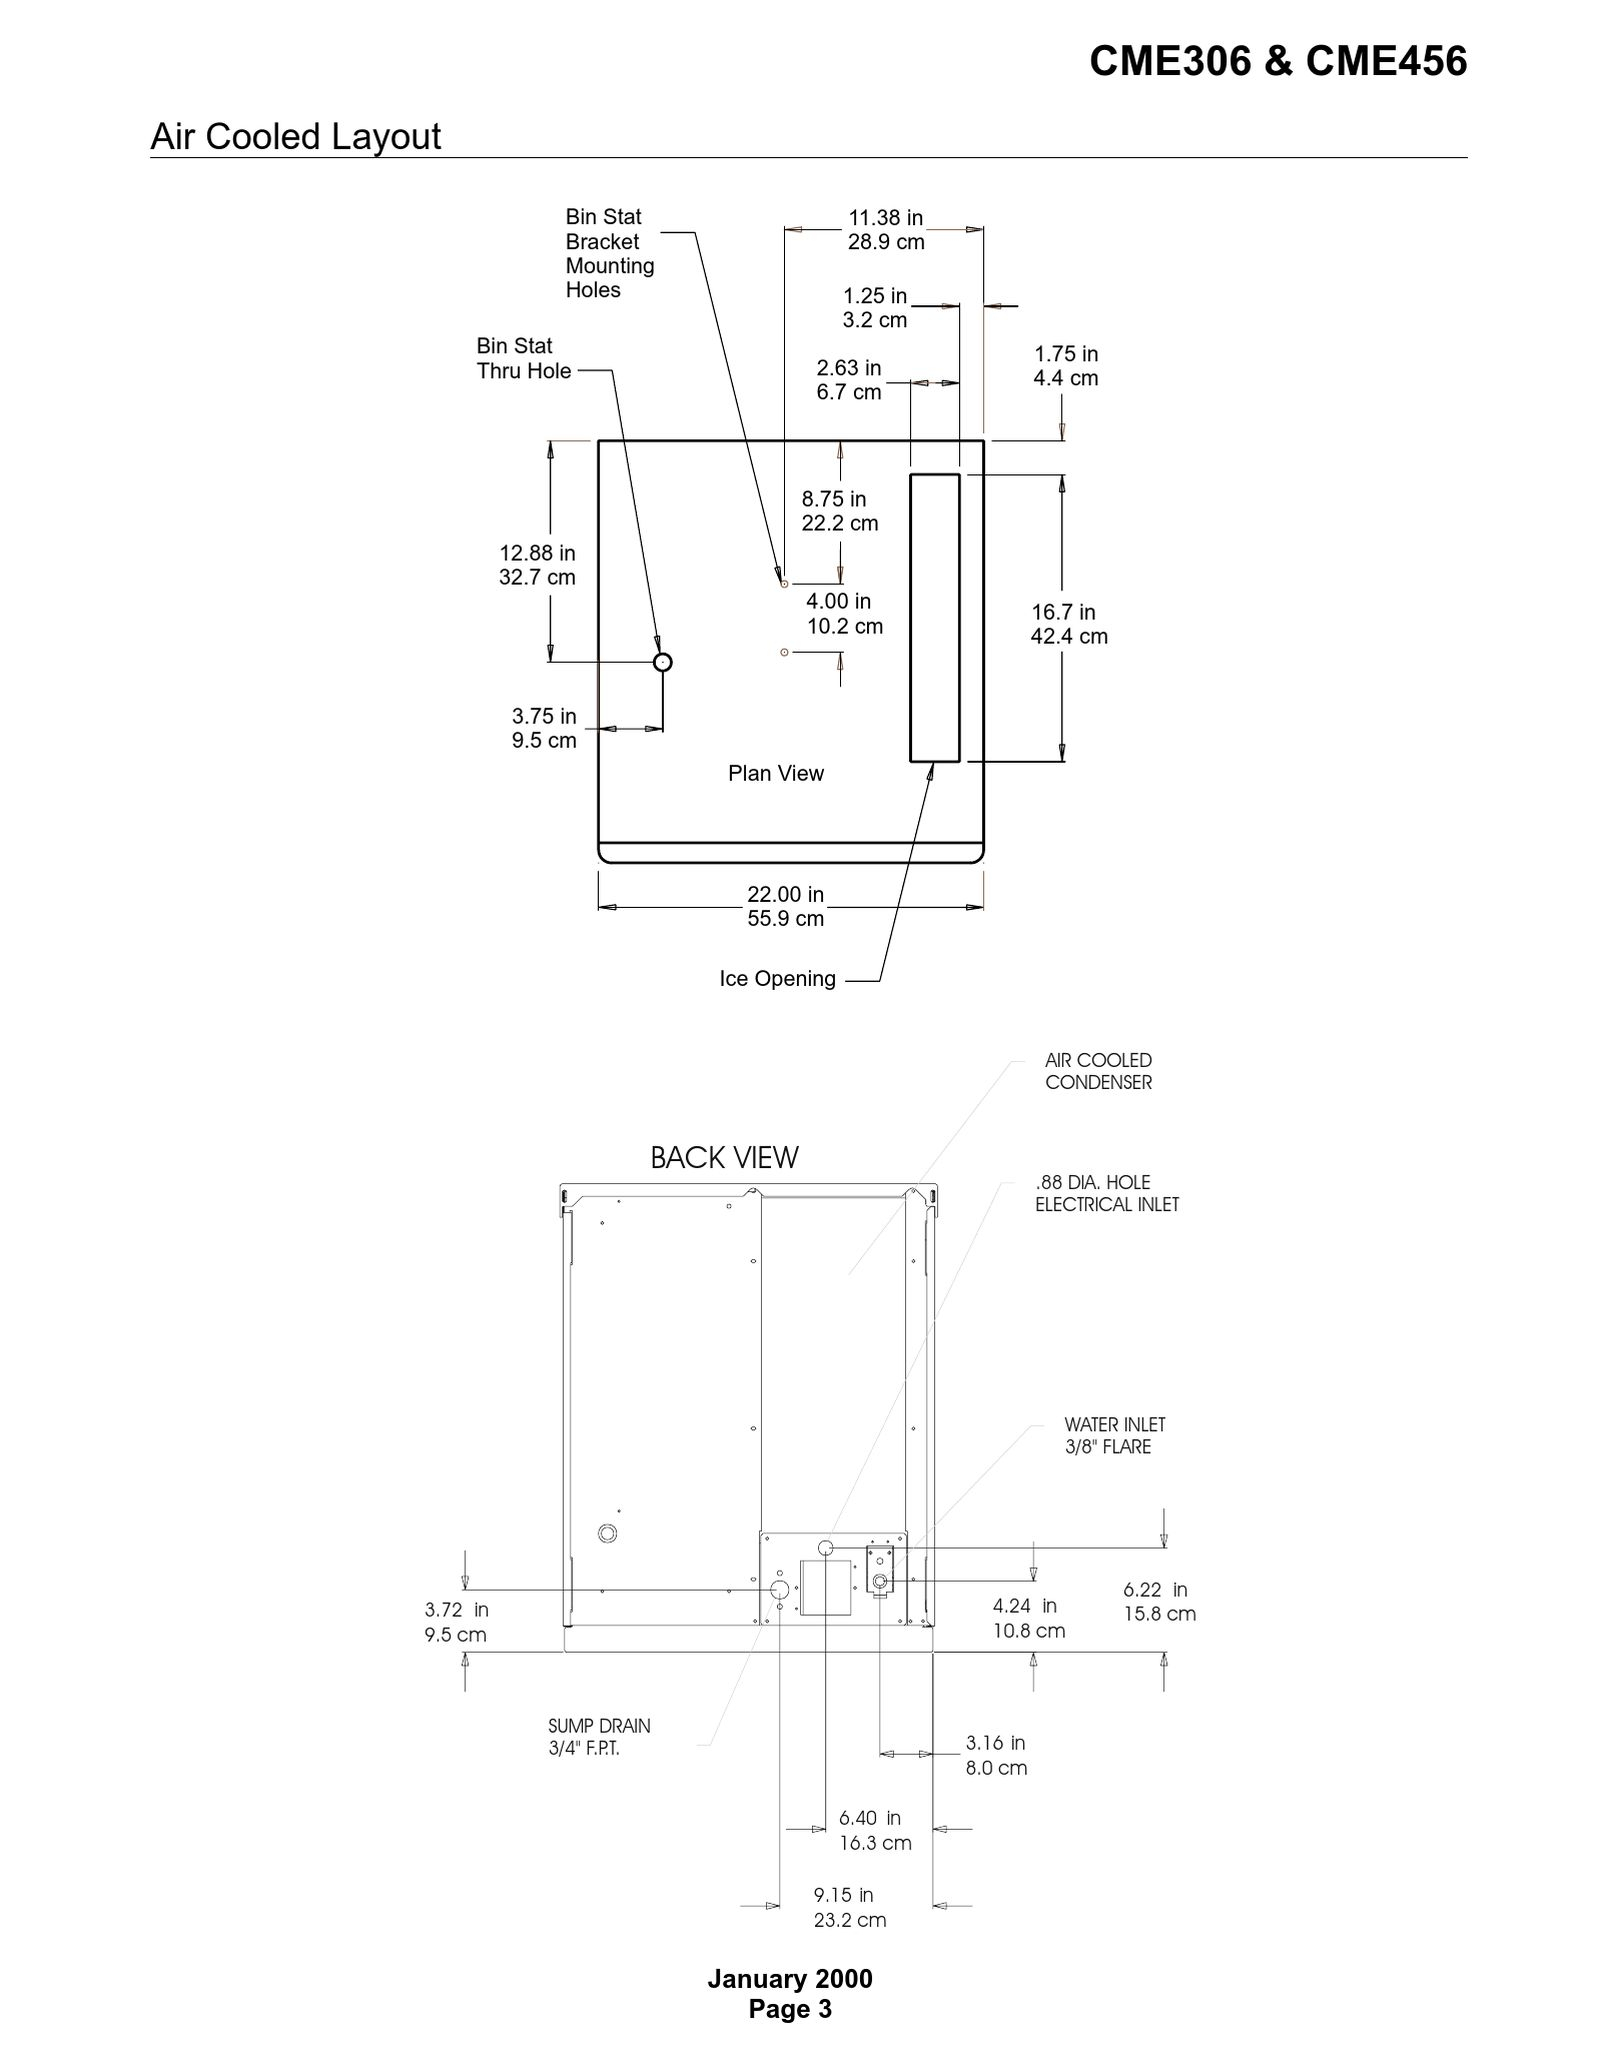 scotsman ice machine wiring diagram Collection-Scotsman Ice Machine Wiring Diagram Fresh Service Manual Cme306 Cme456 3-d